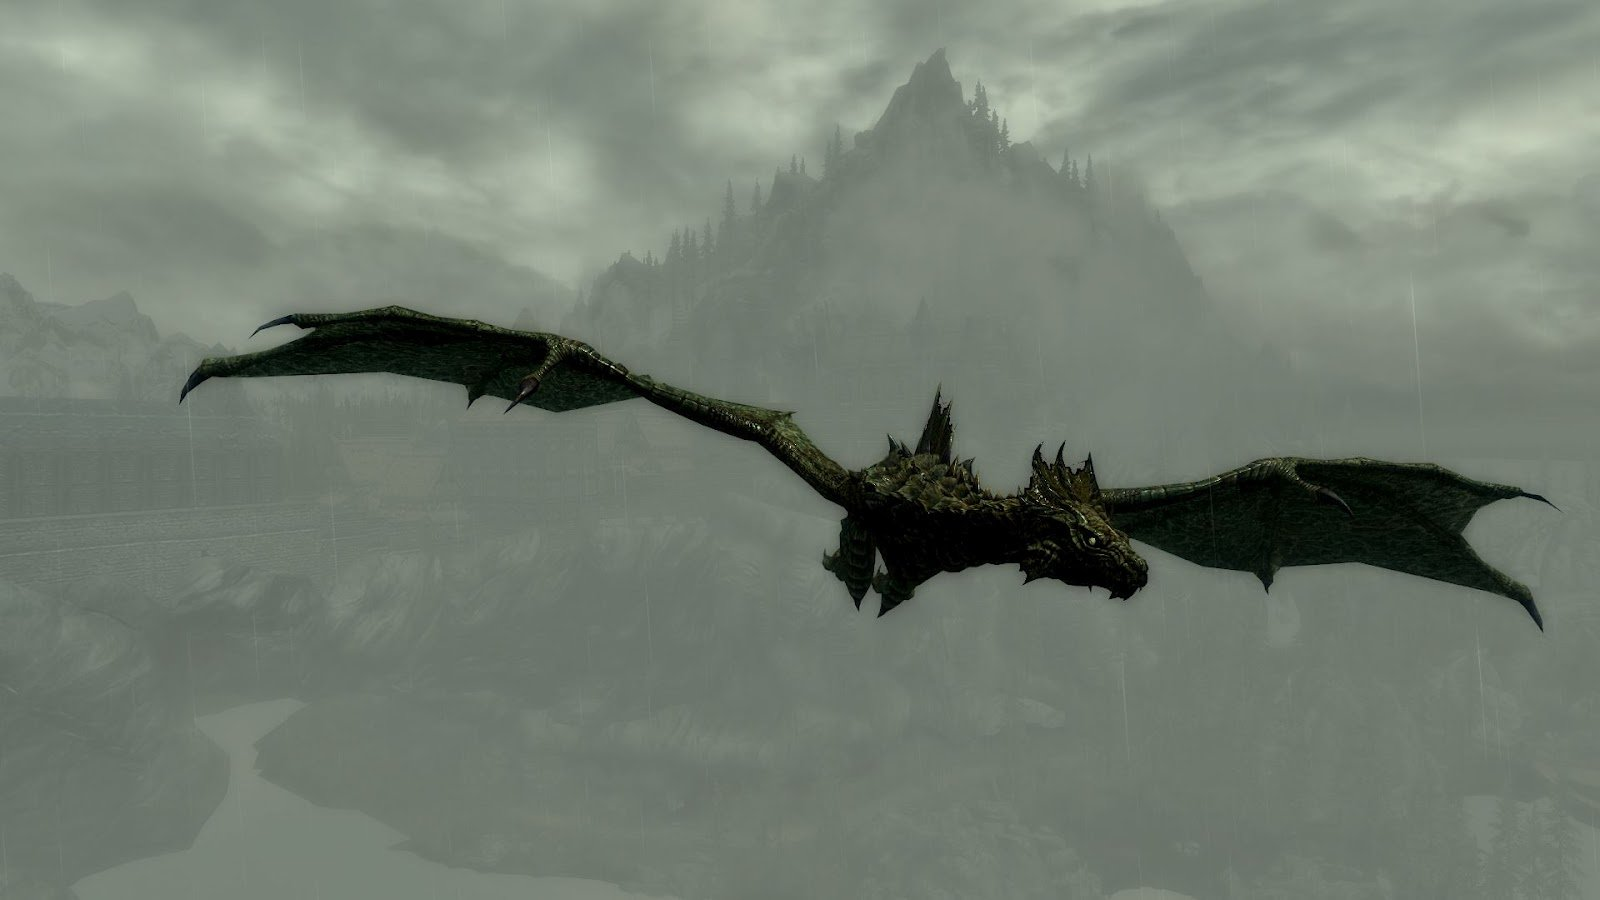 Elder Scrolls VSkyrim Flying Dragon HD Wallpaper 1600x900